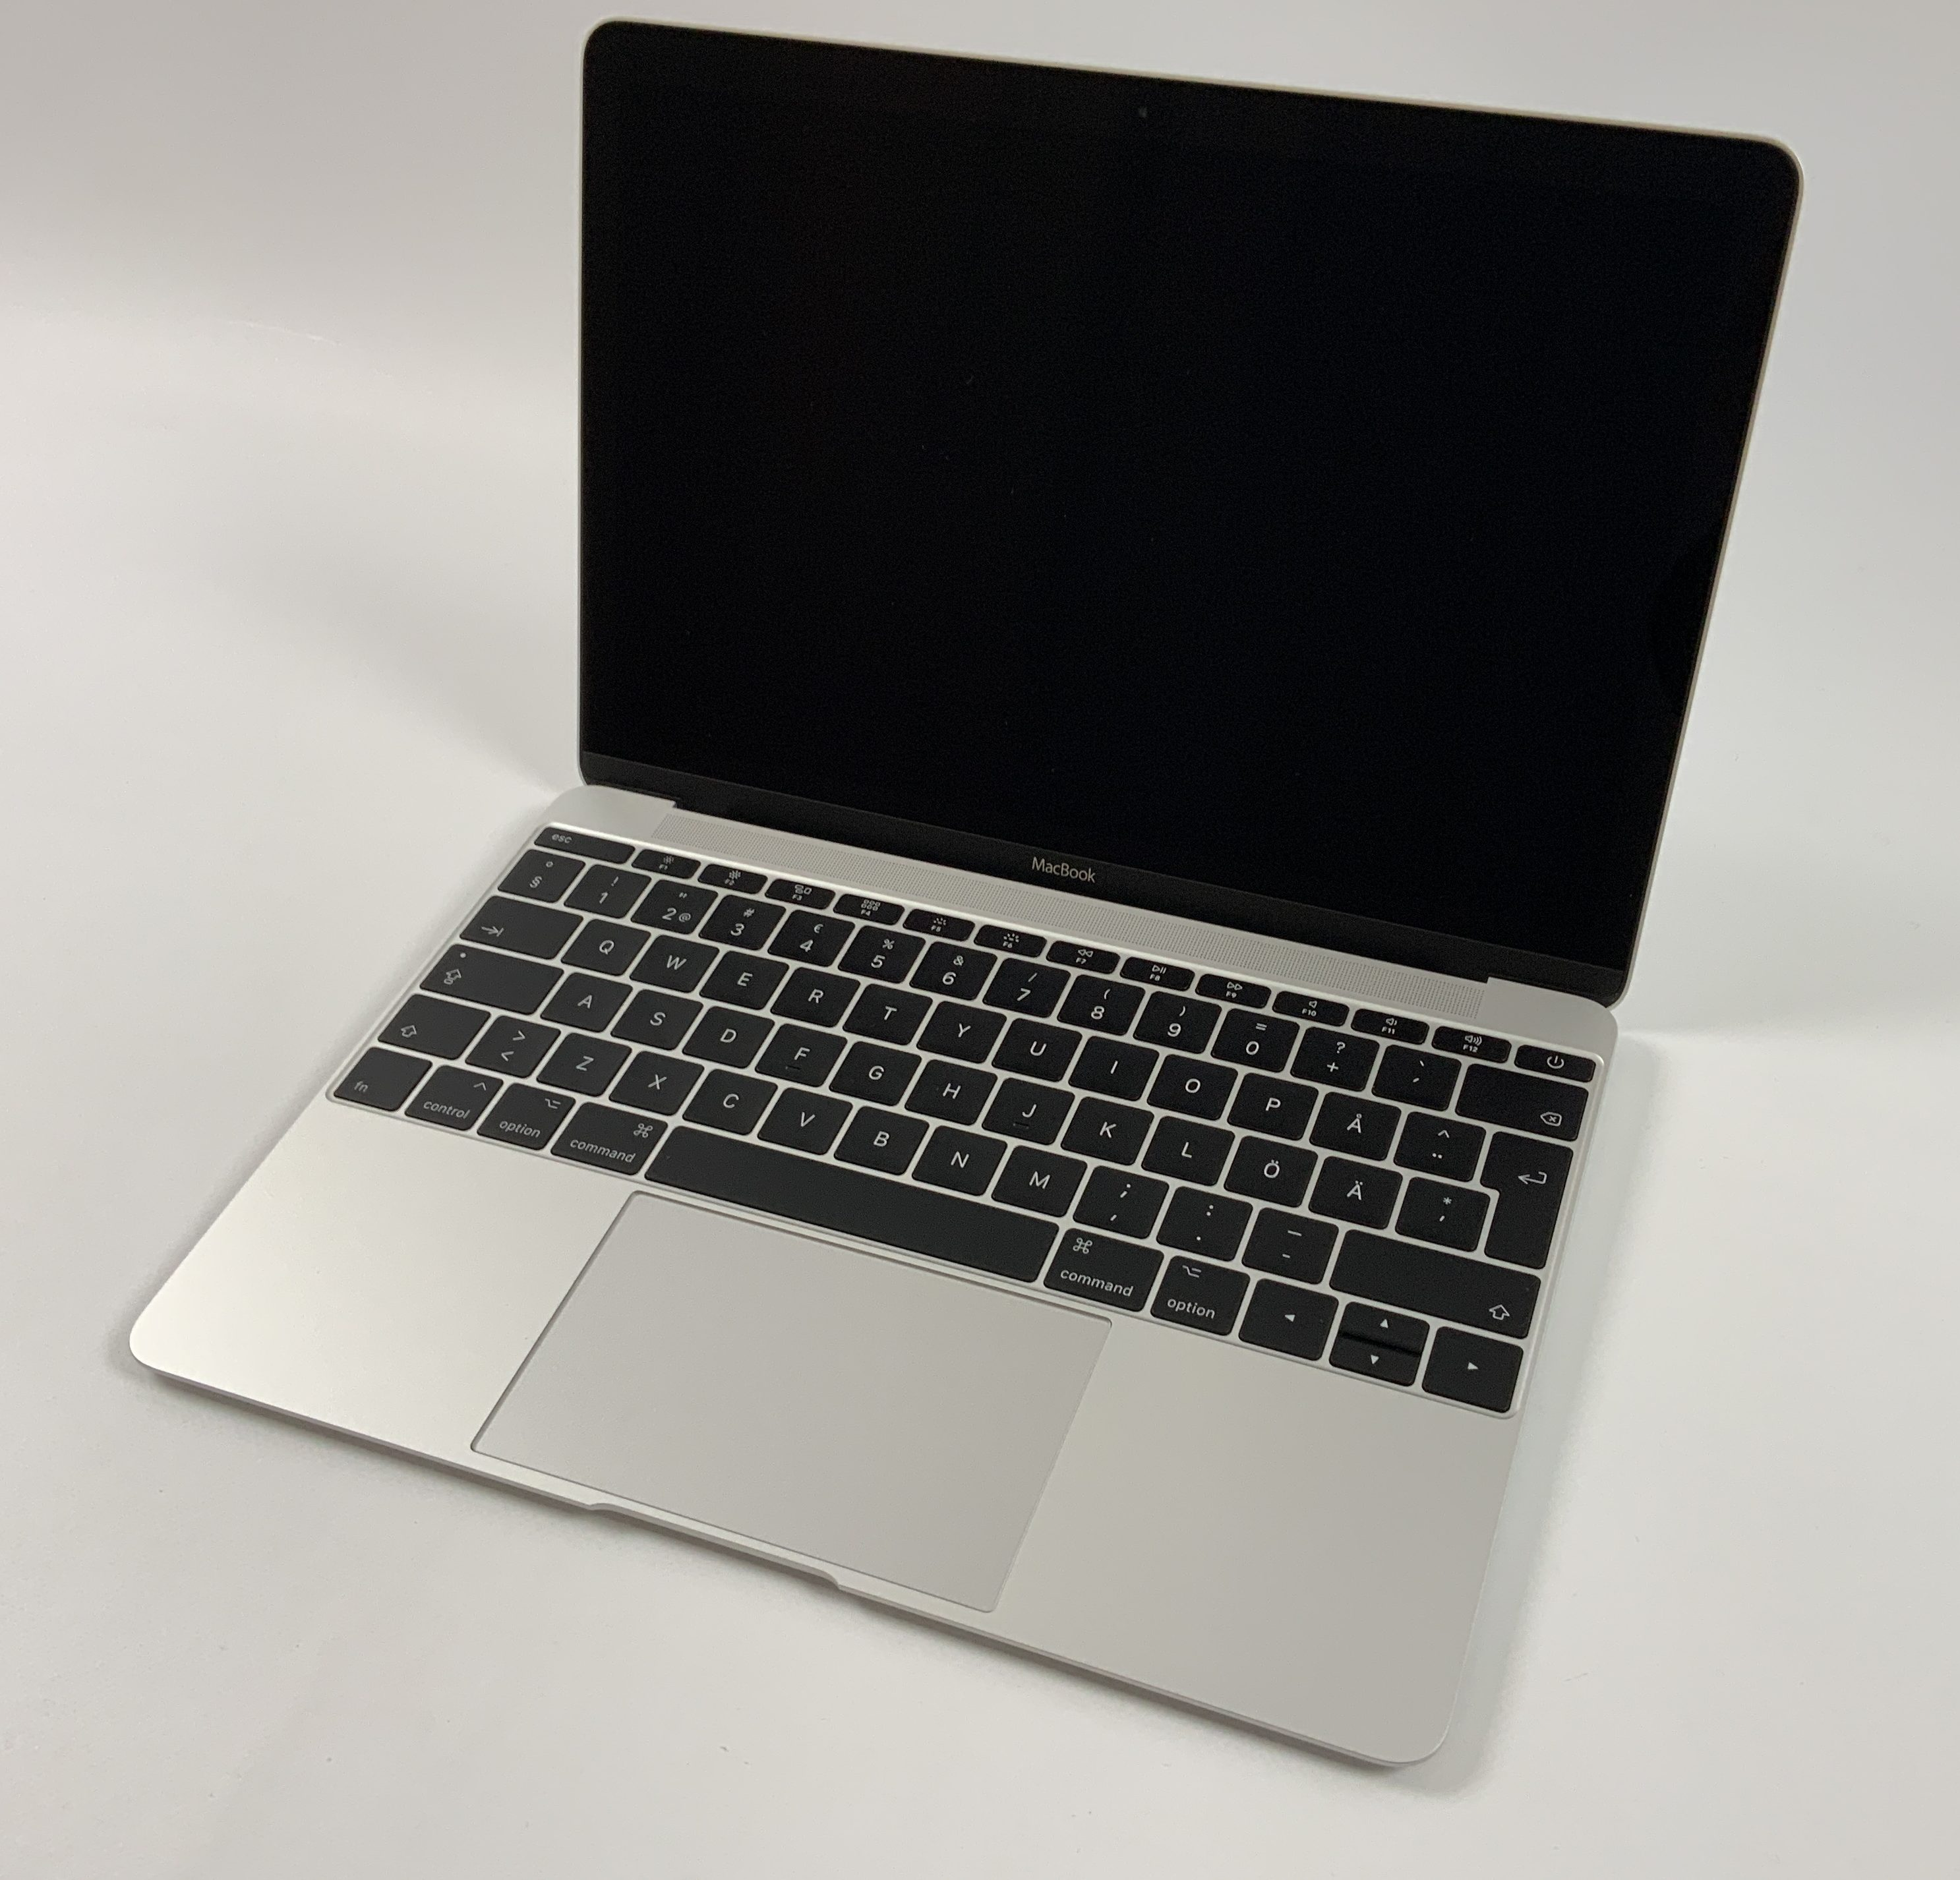 "MacBook 12"" Mid 2017 (Intel Core m3 1.2 GHz 8 GB RAM 256 GB SSD), Silver, Intel Core m3 1.2 GHz, 8 GB RAM, 256 GB SSD, Kuva 1"